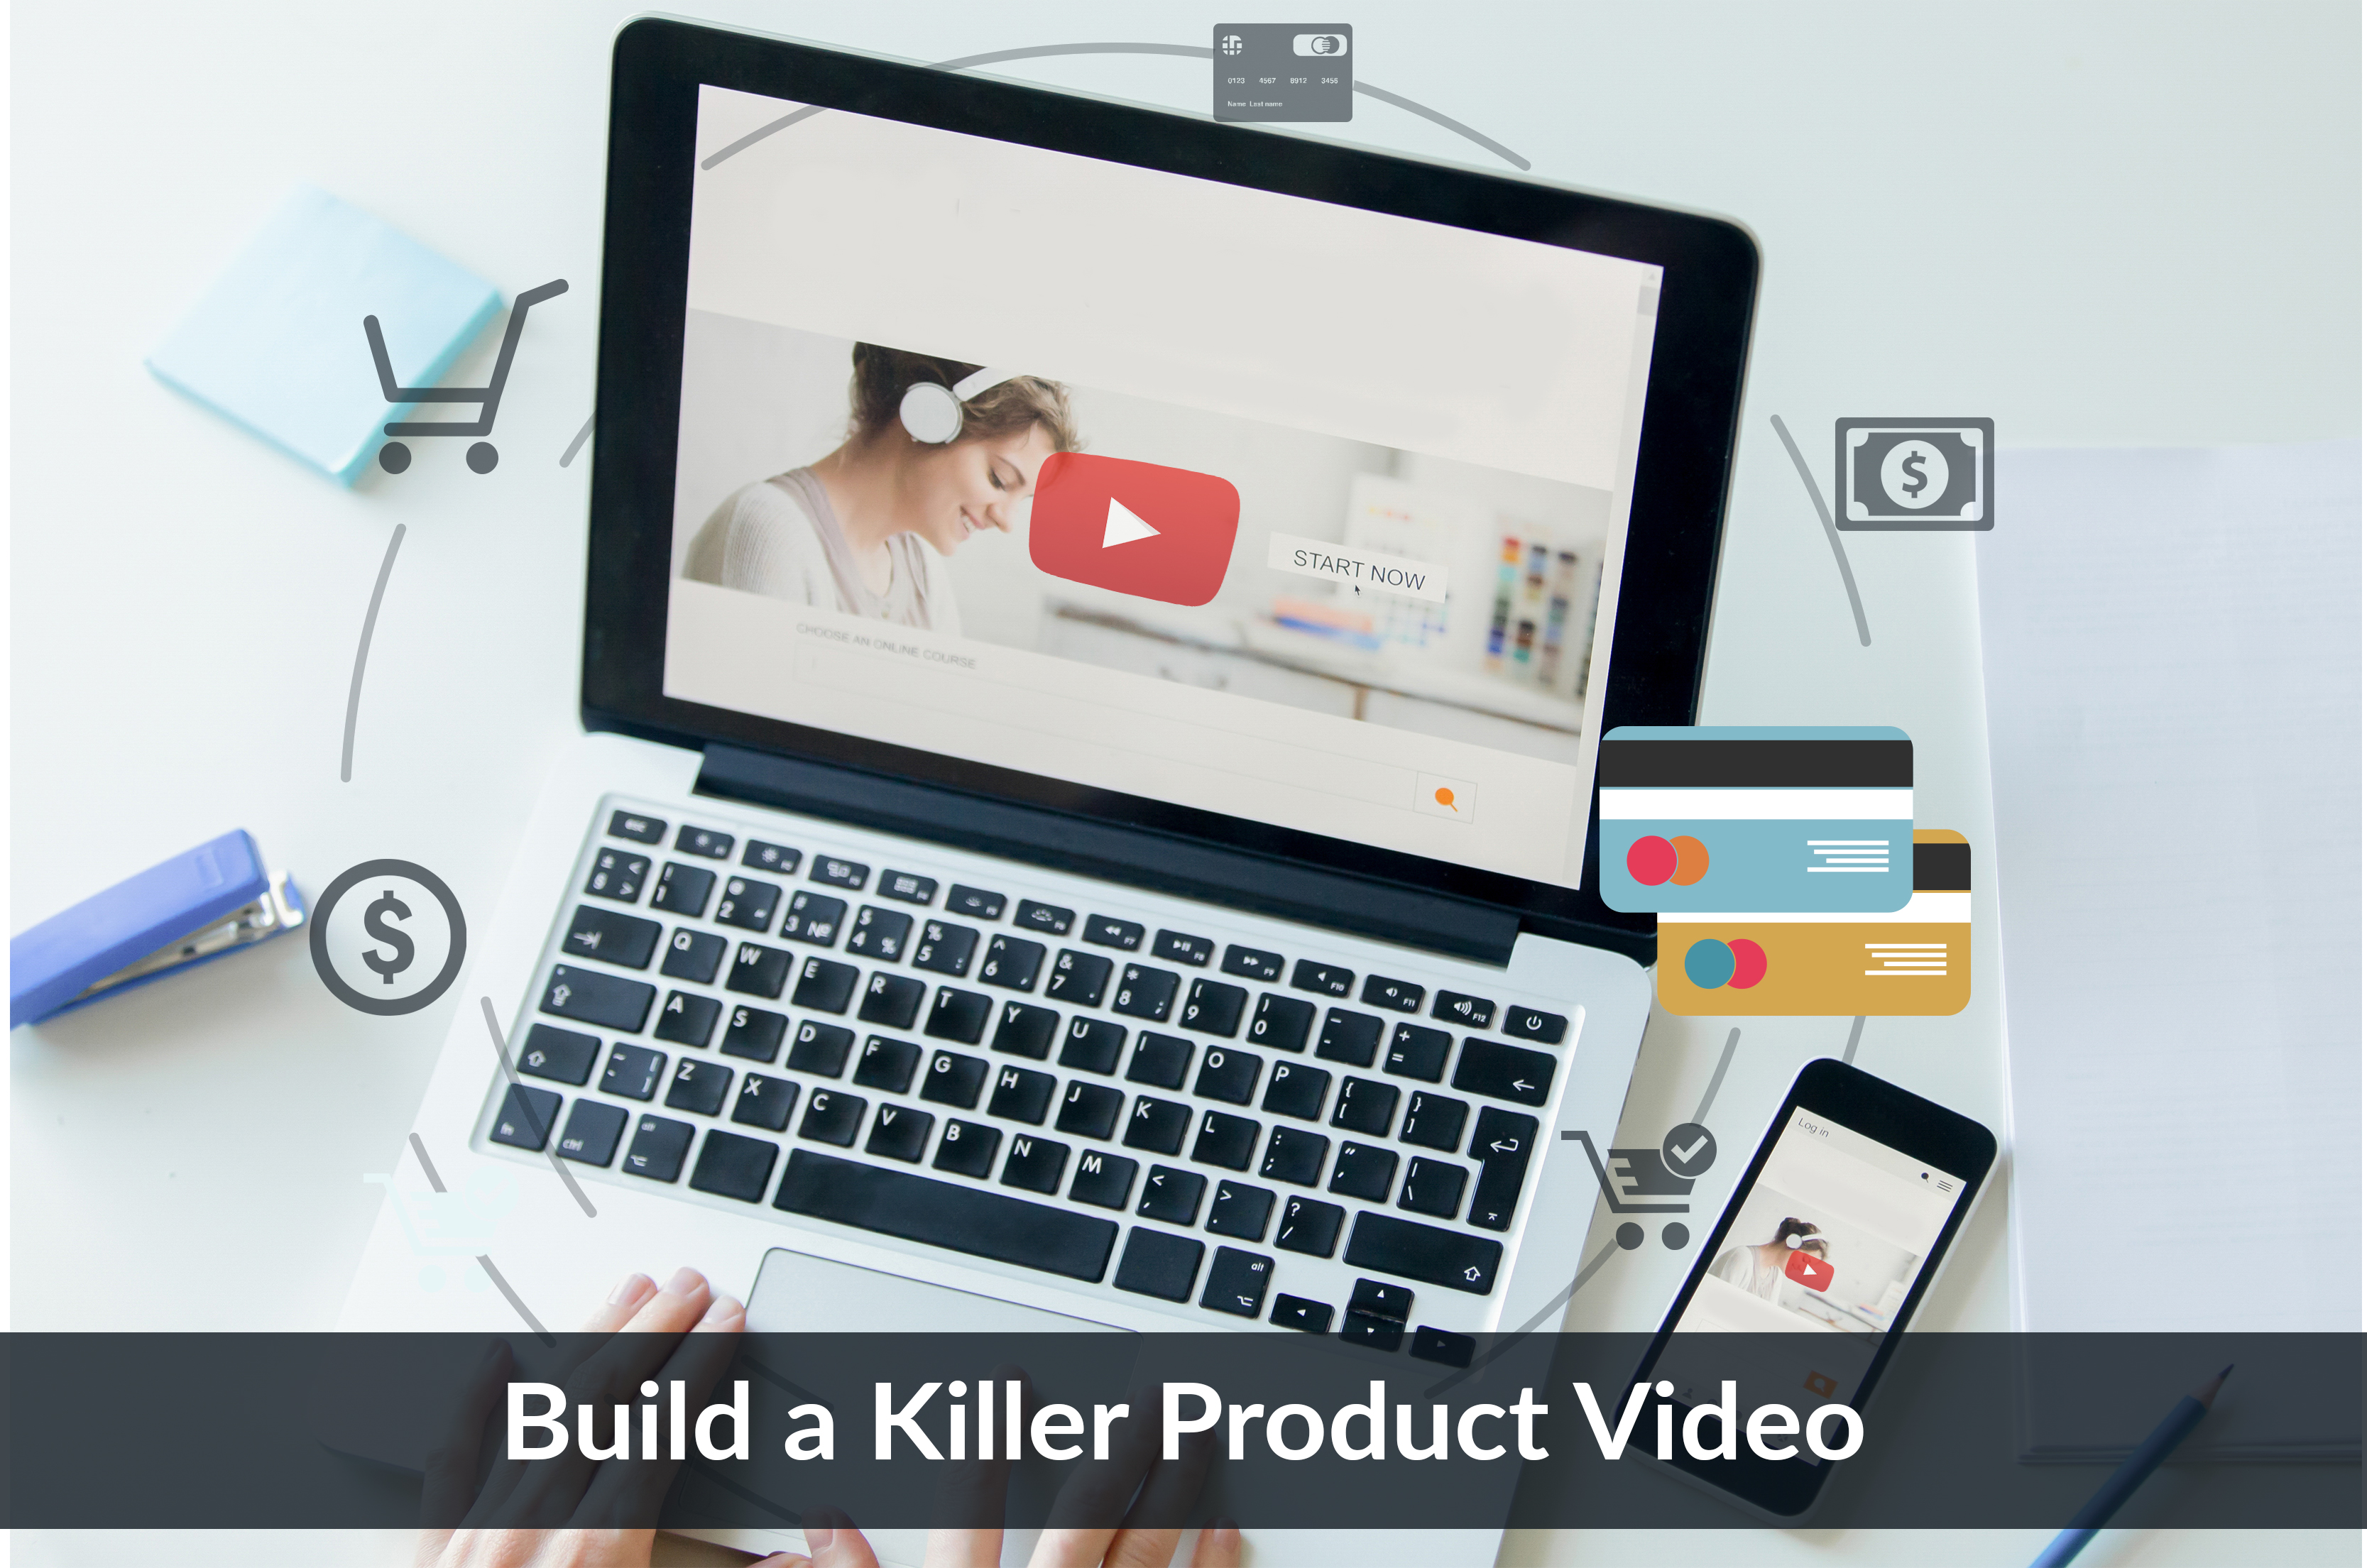 Build a Killer Product Video